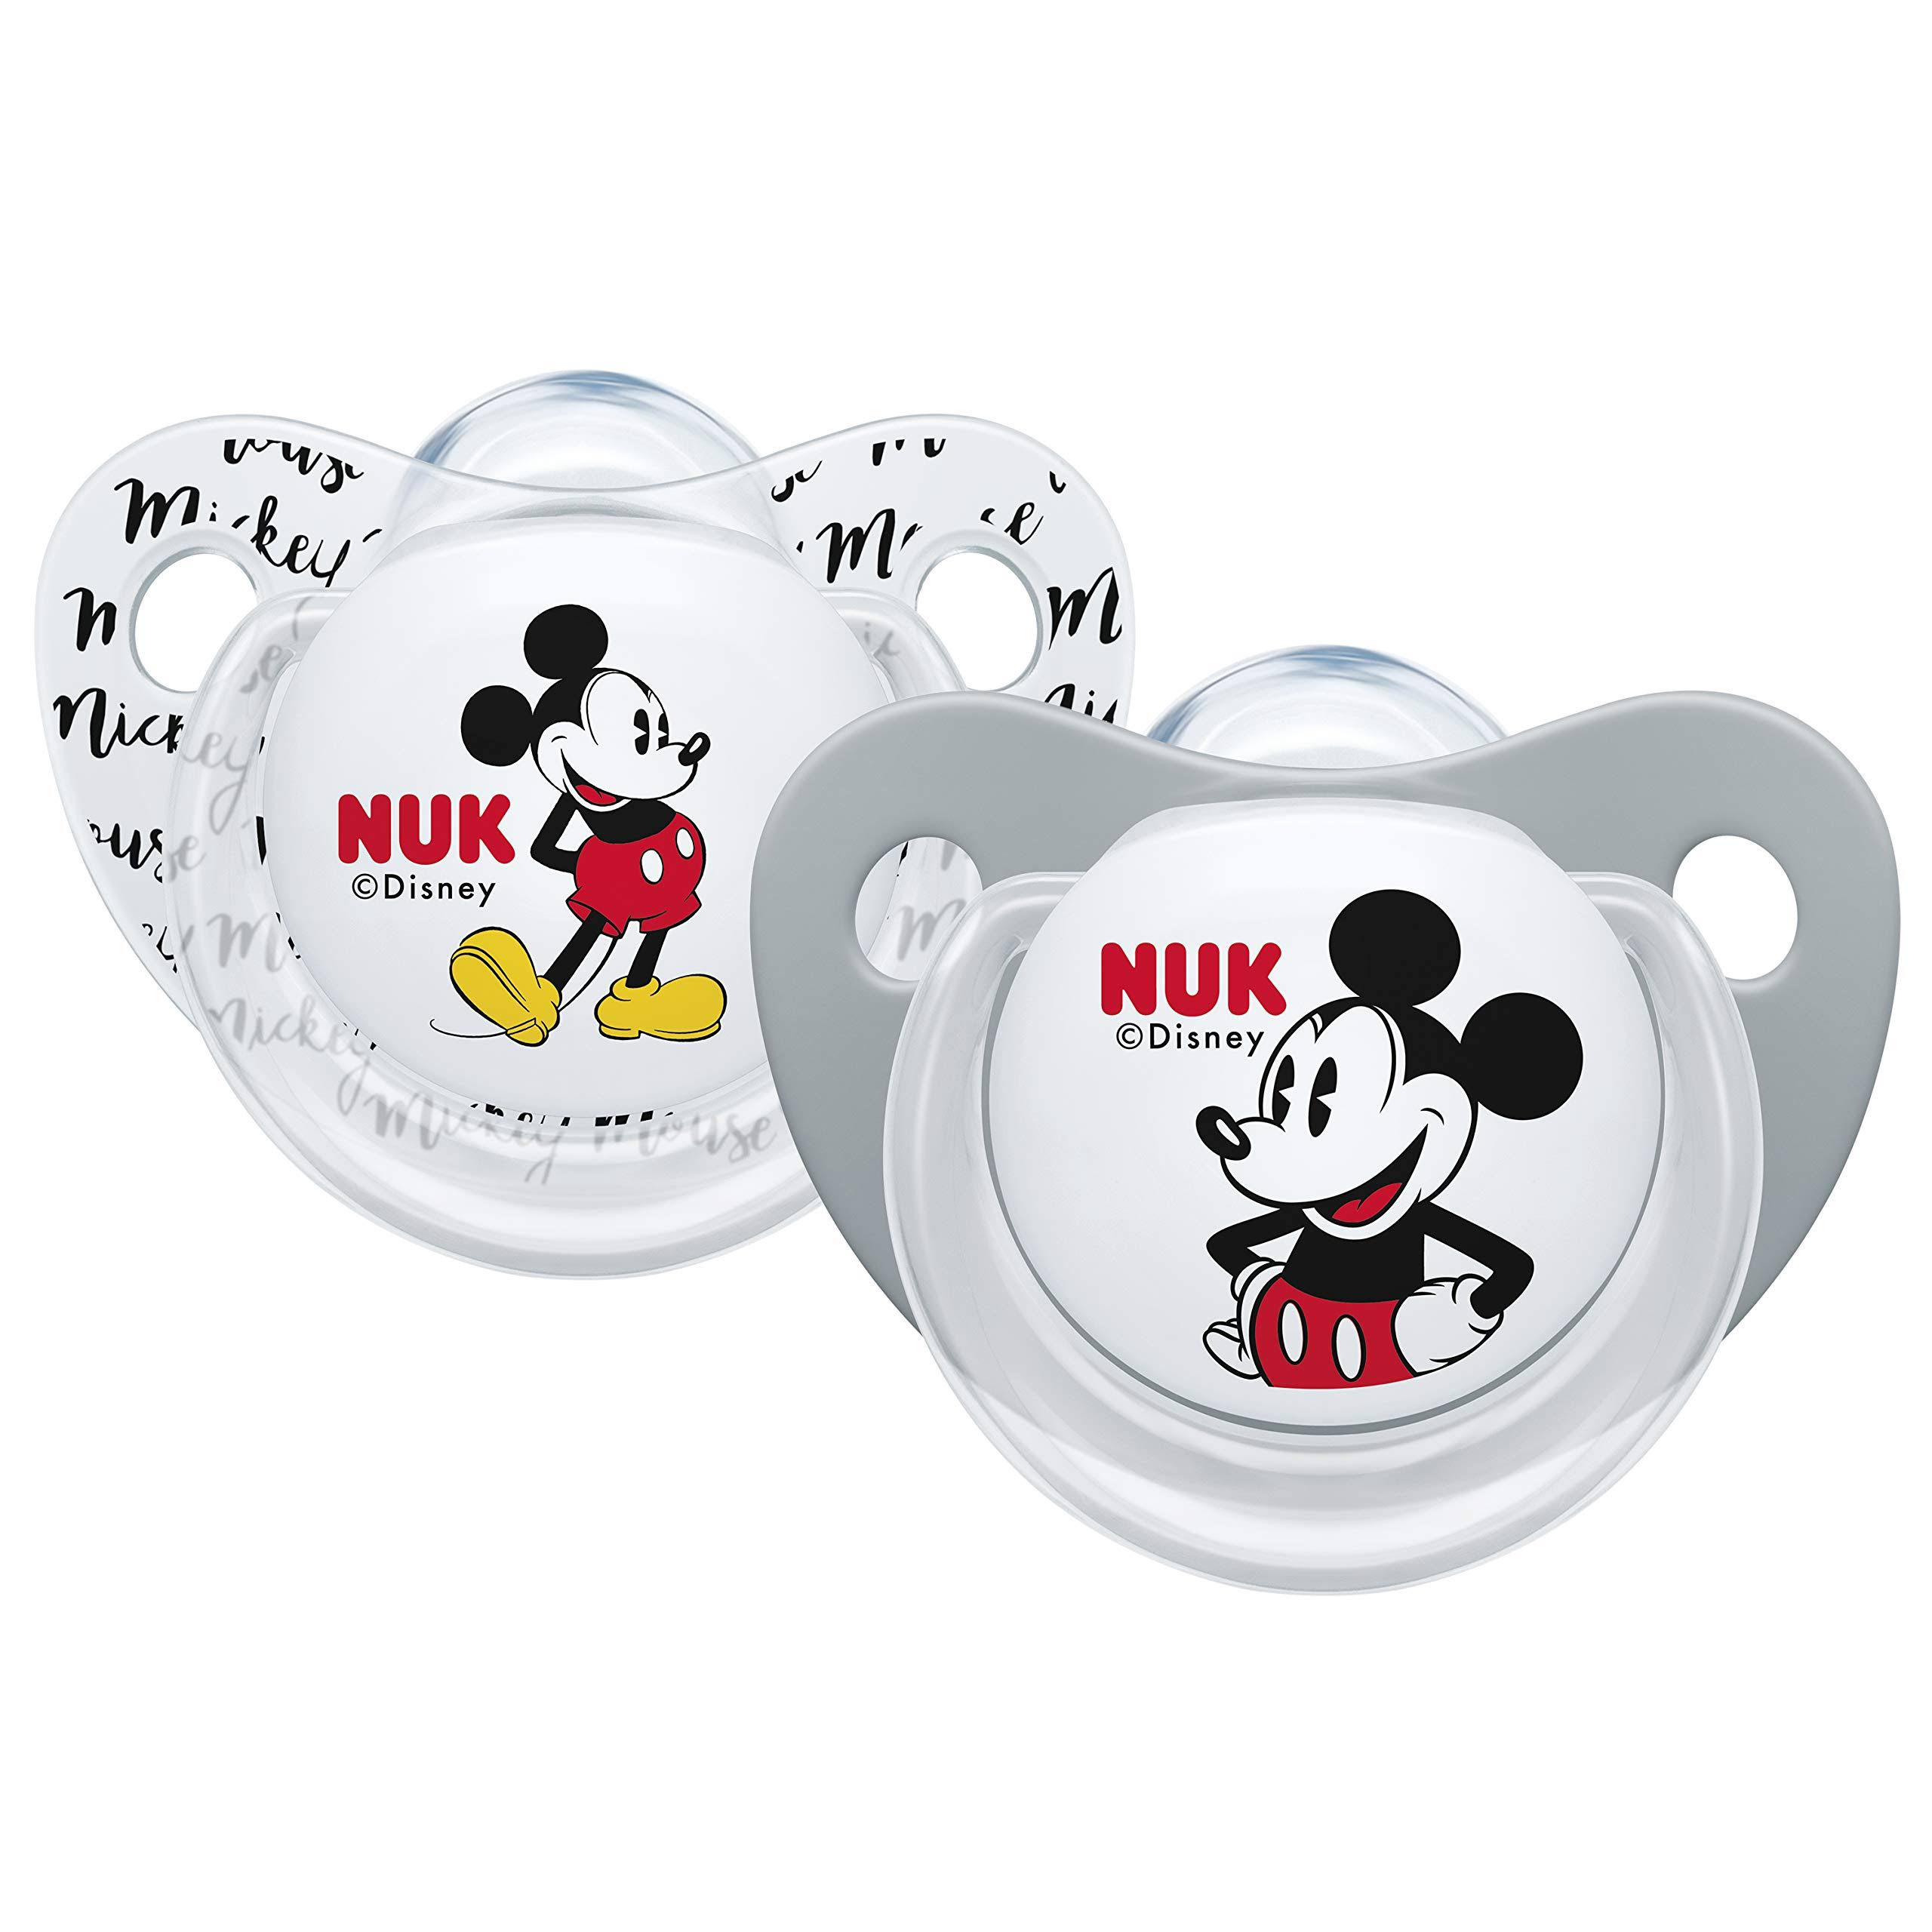 NUK Disney Silicone Soother 0-6m 2pk